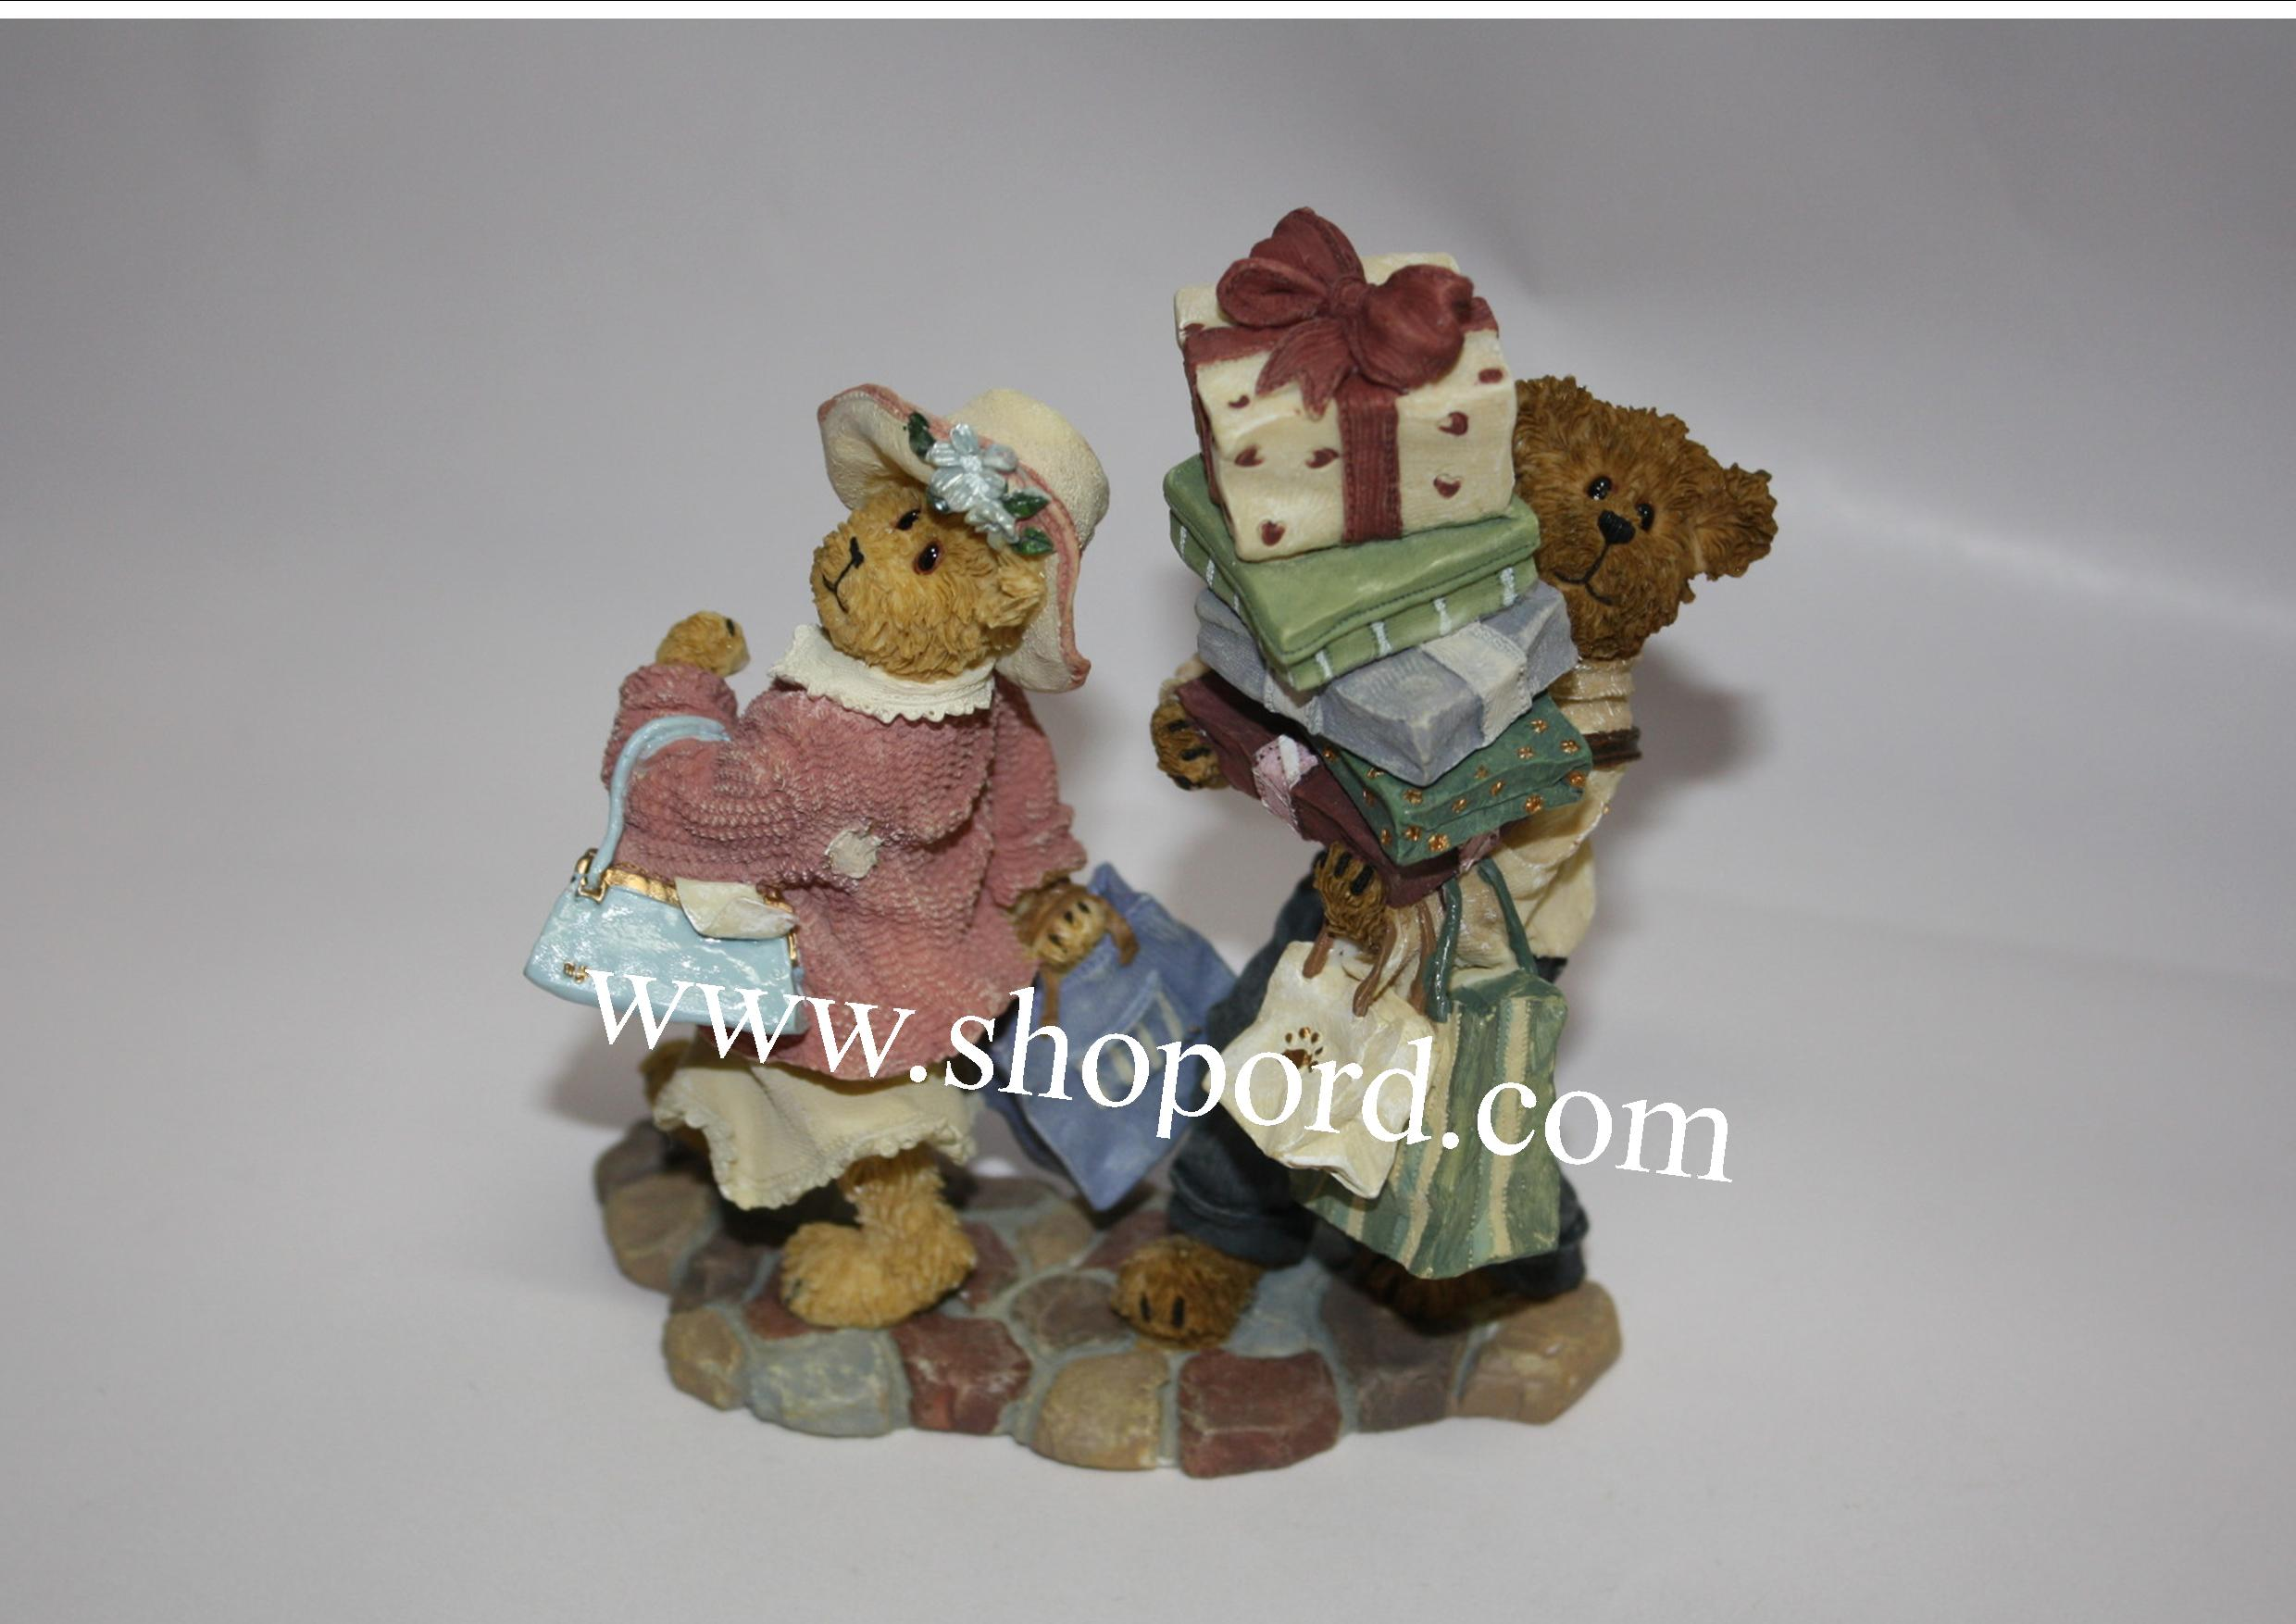 Boyds The Bearstone Collection - Ms. Shopsalot with Schlepper (Just One More Stop) #2277990